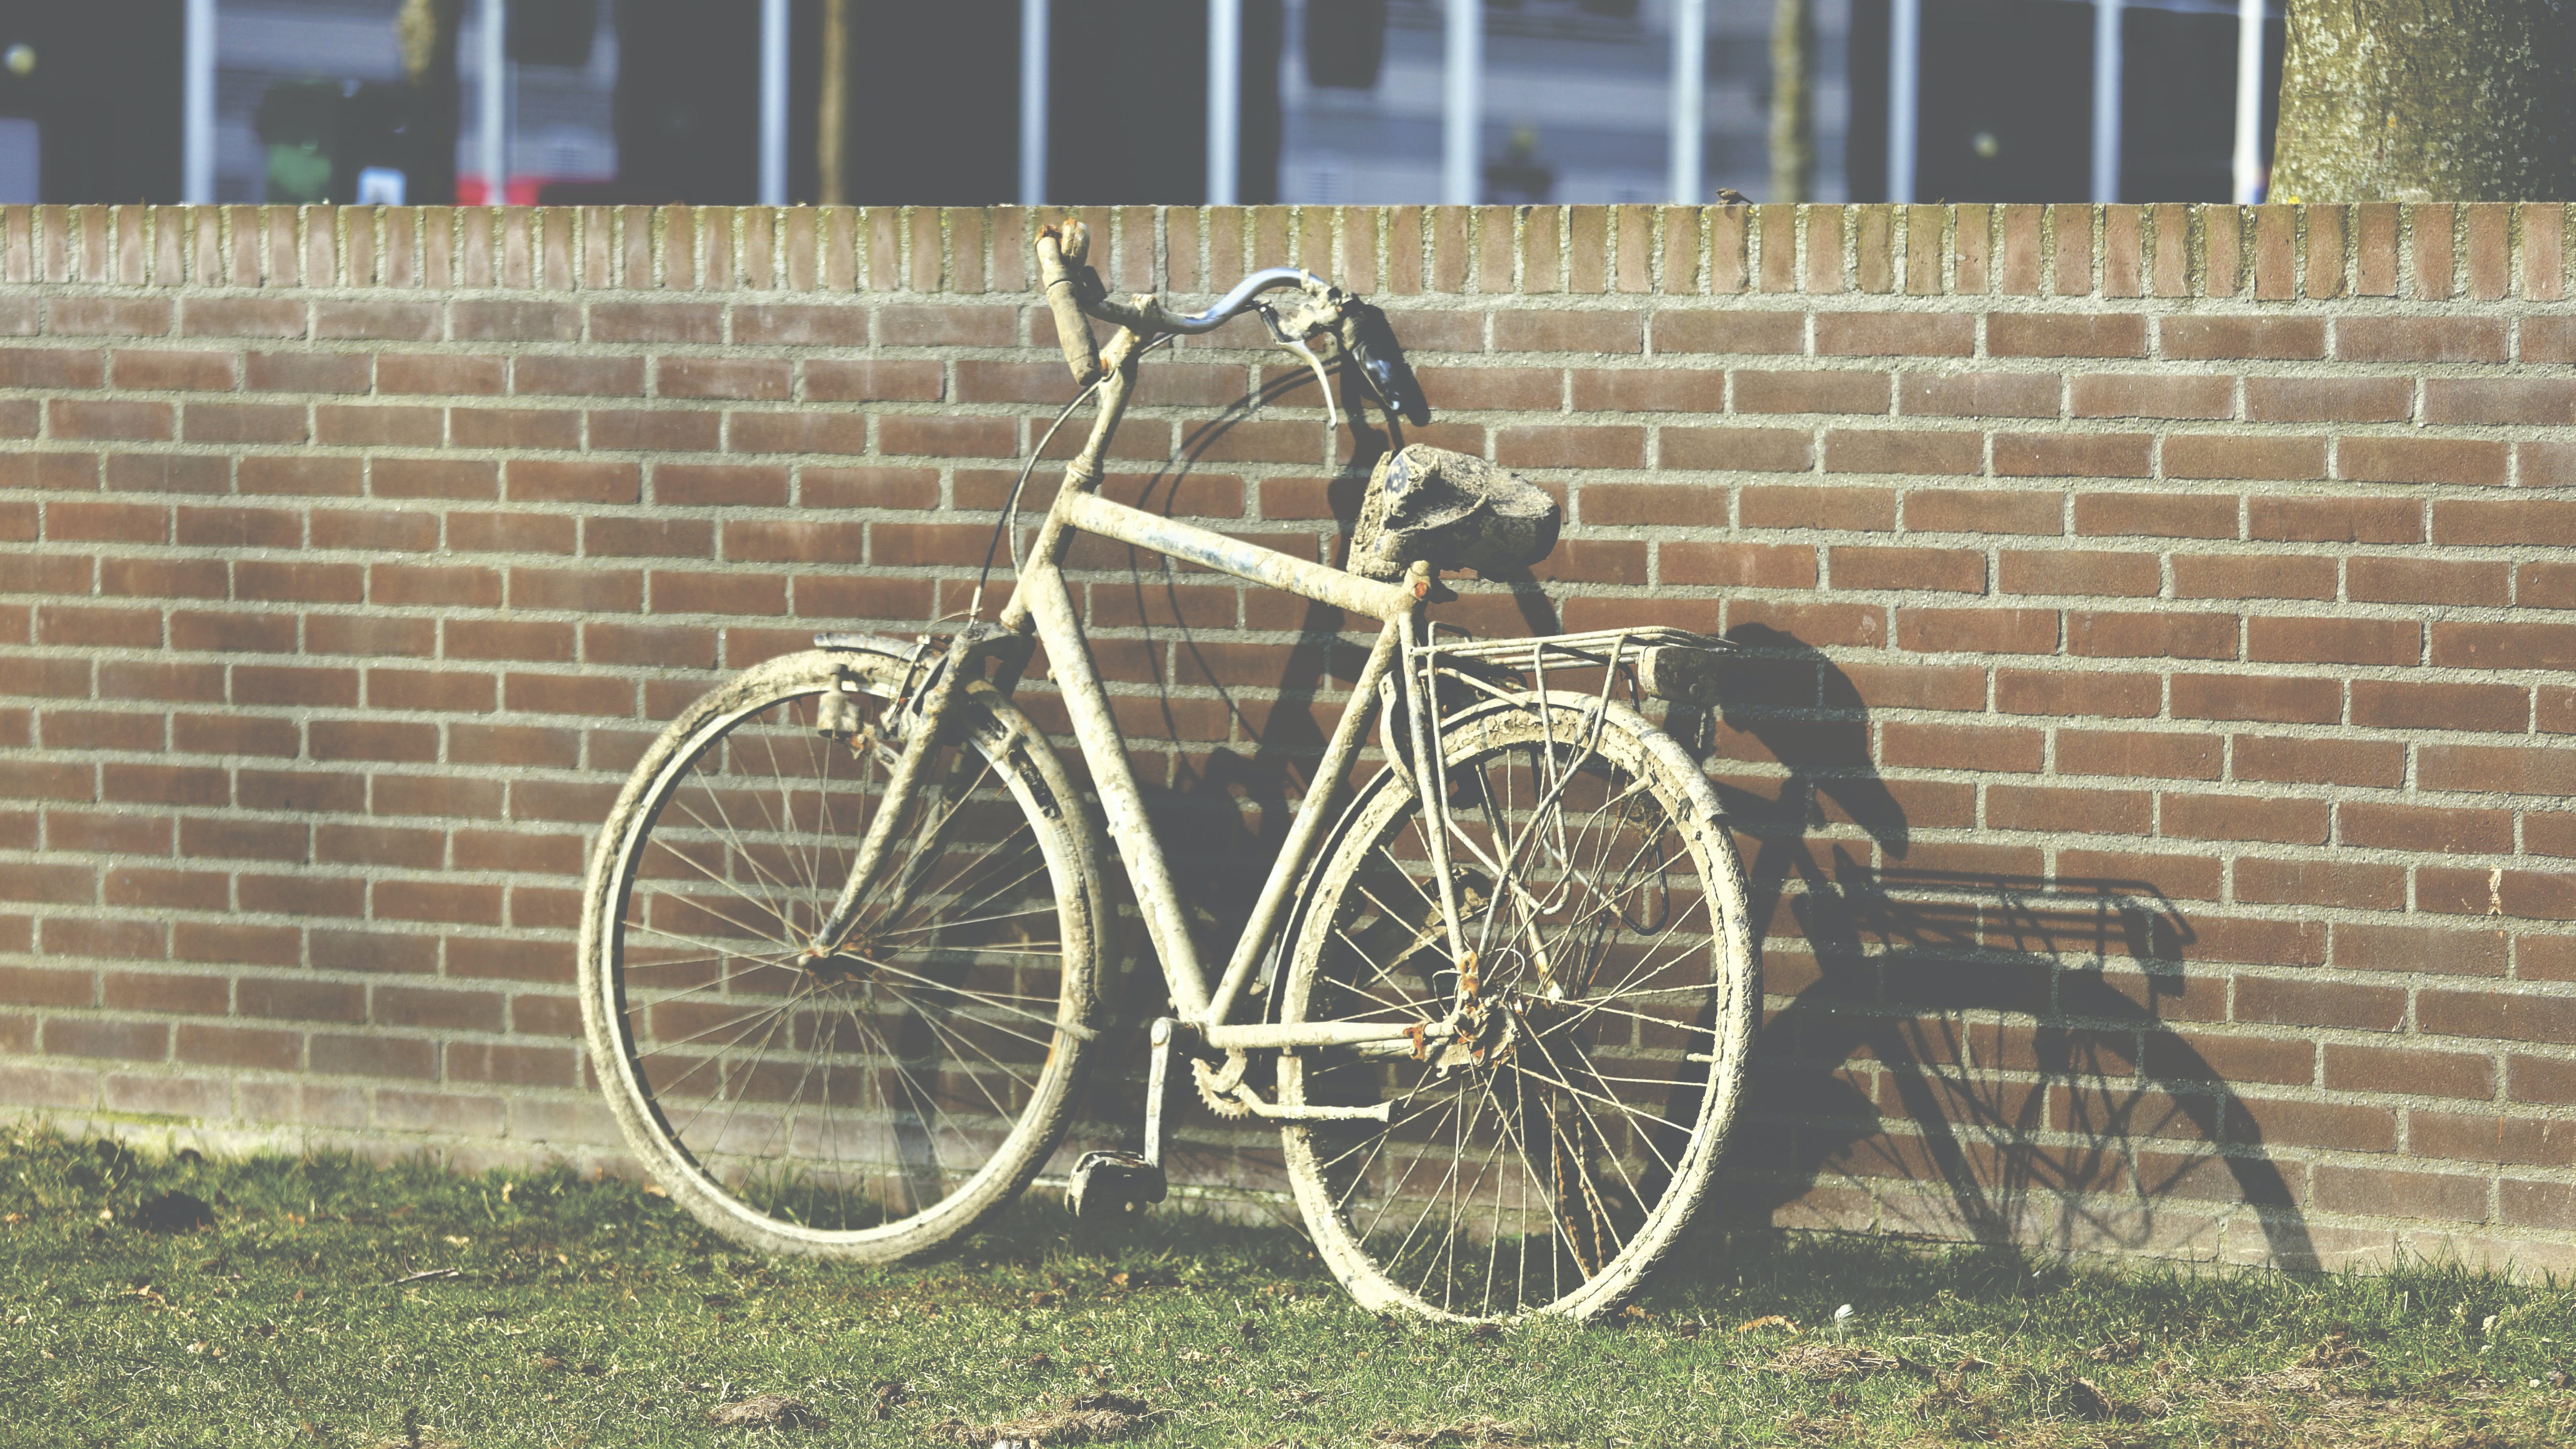 White Cruiser Bicycle Parked Beside Brown Building